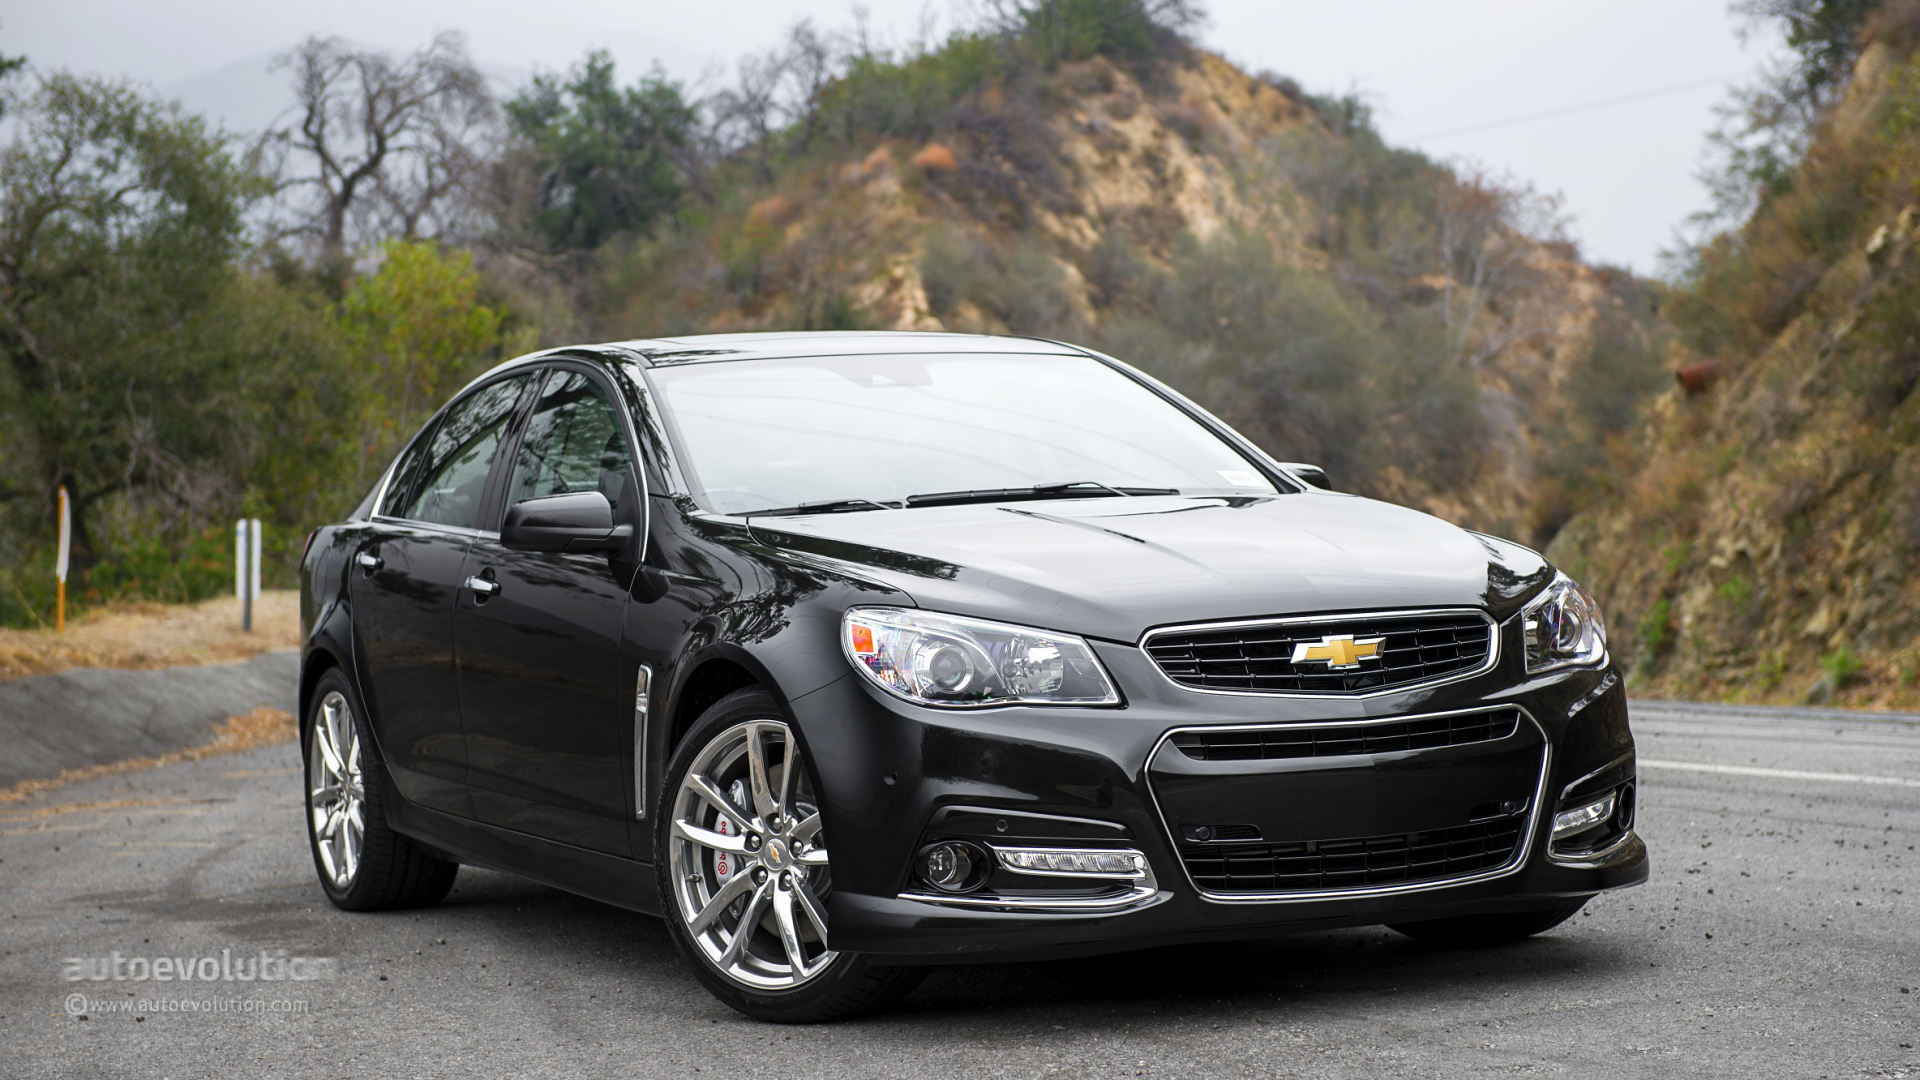 Chevrolet ss gets thumbs up from consumer reports for Newspaper wallpaper for sale